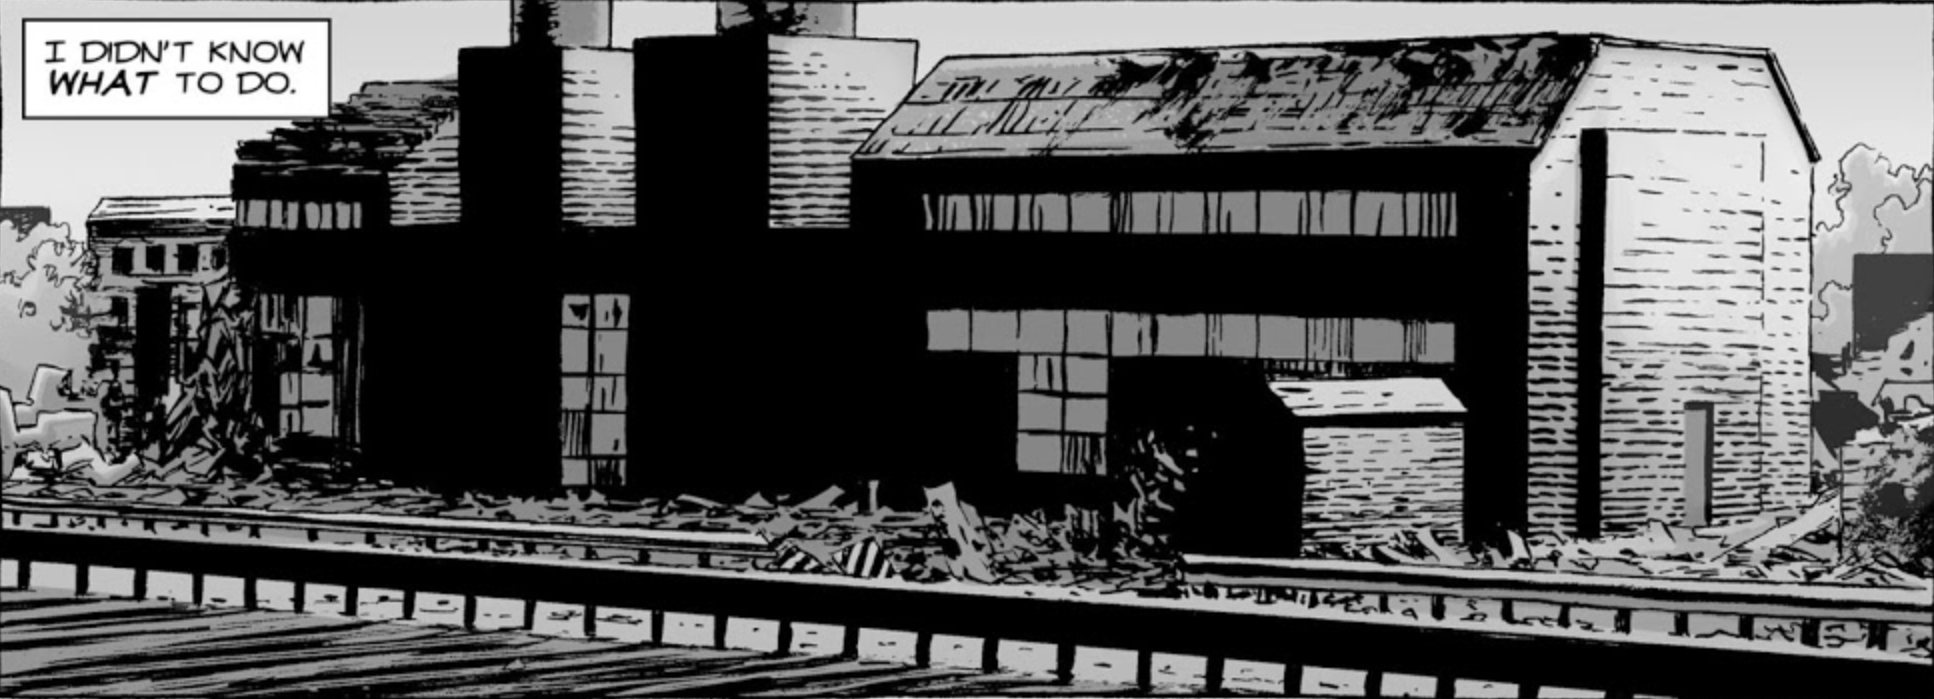 Train Depot Outpost (Comic Series)